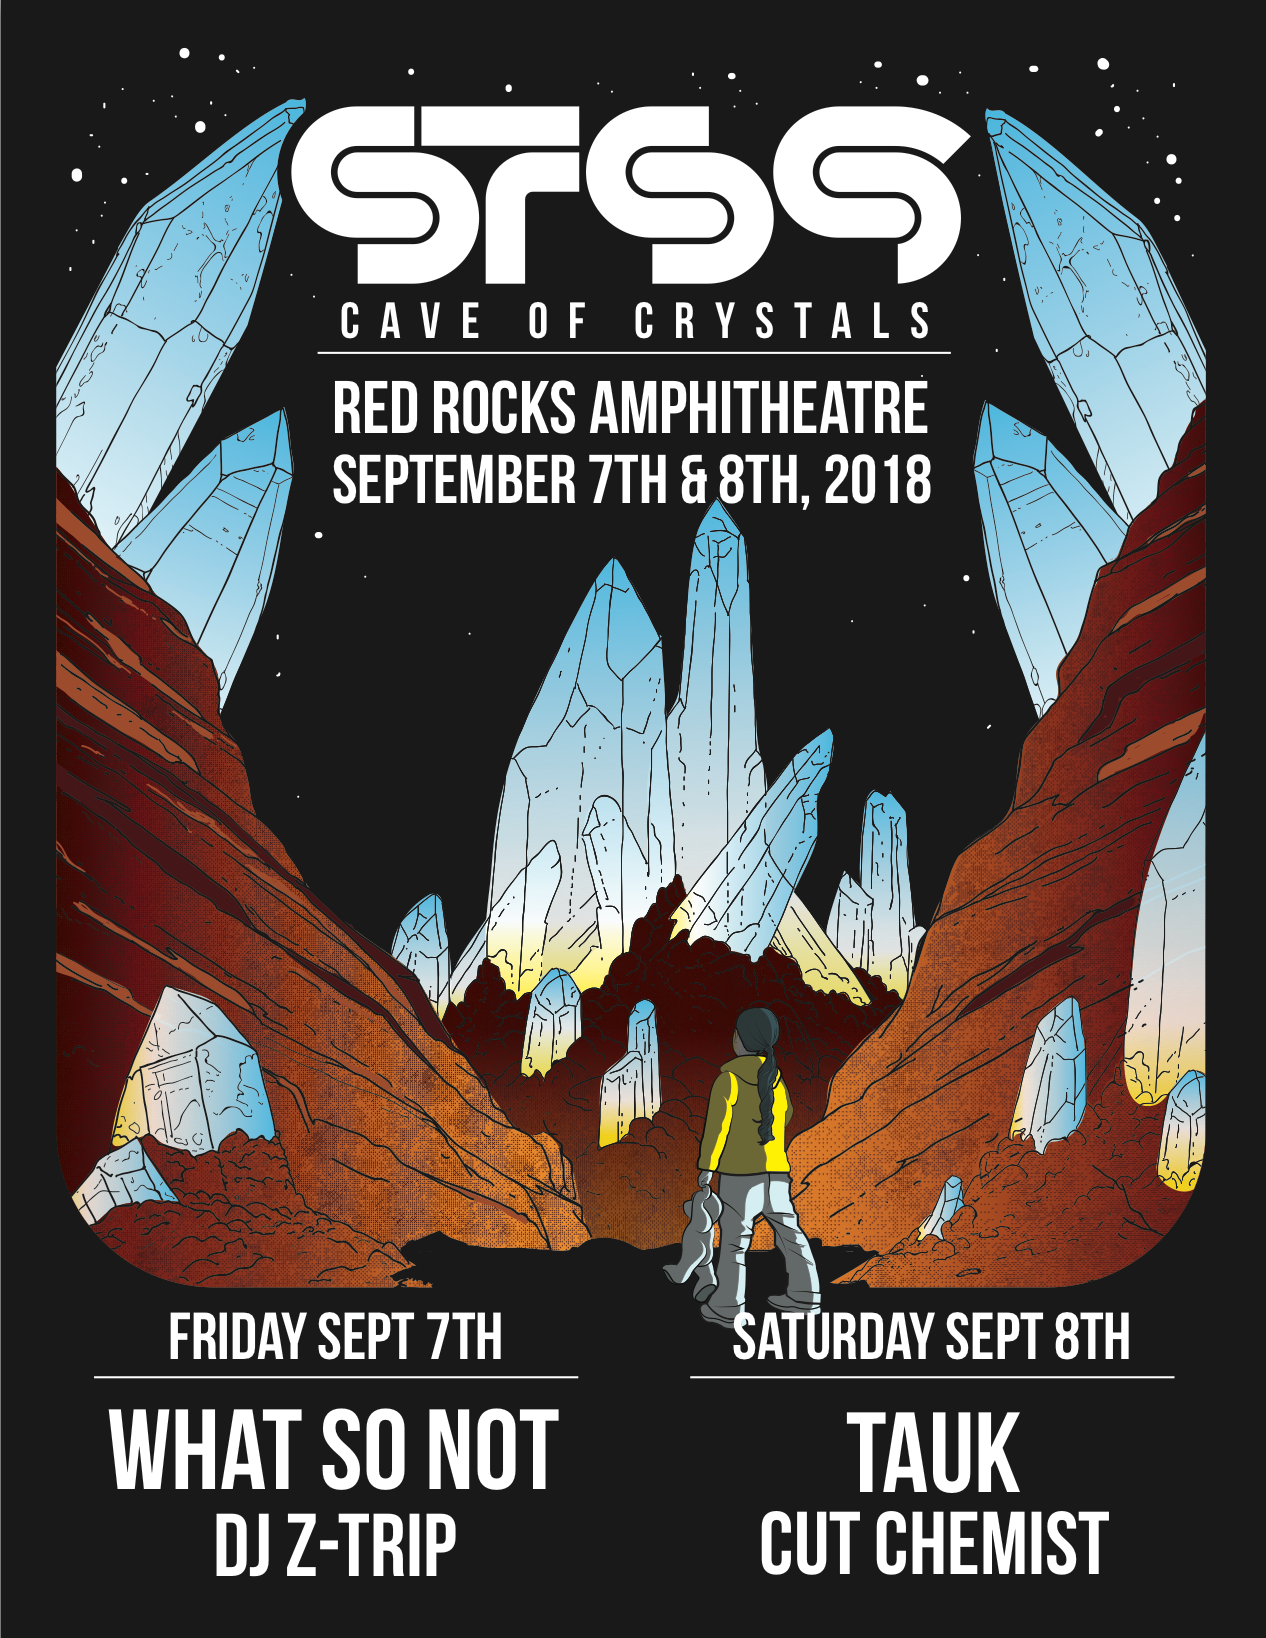 RED ROCKS 2018 - CAVE OF CRYSTALS